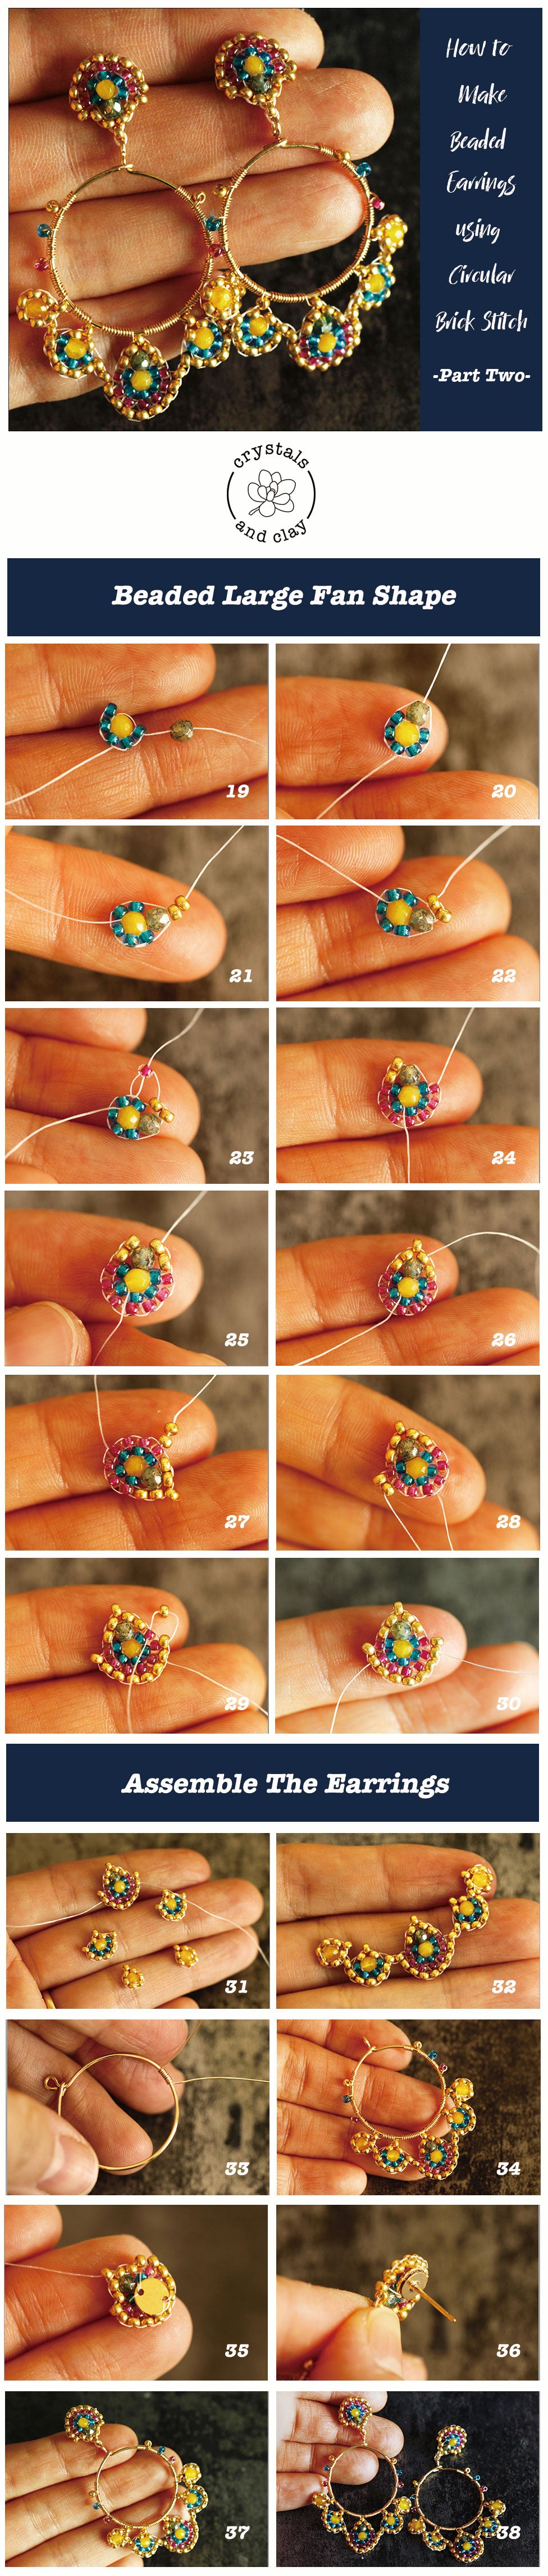 how to make beaded earrings using circular brick stitch